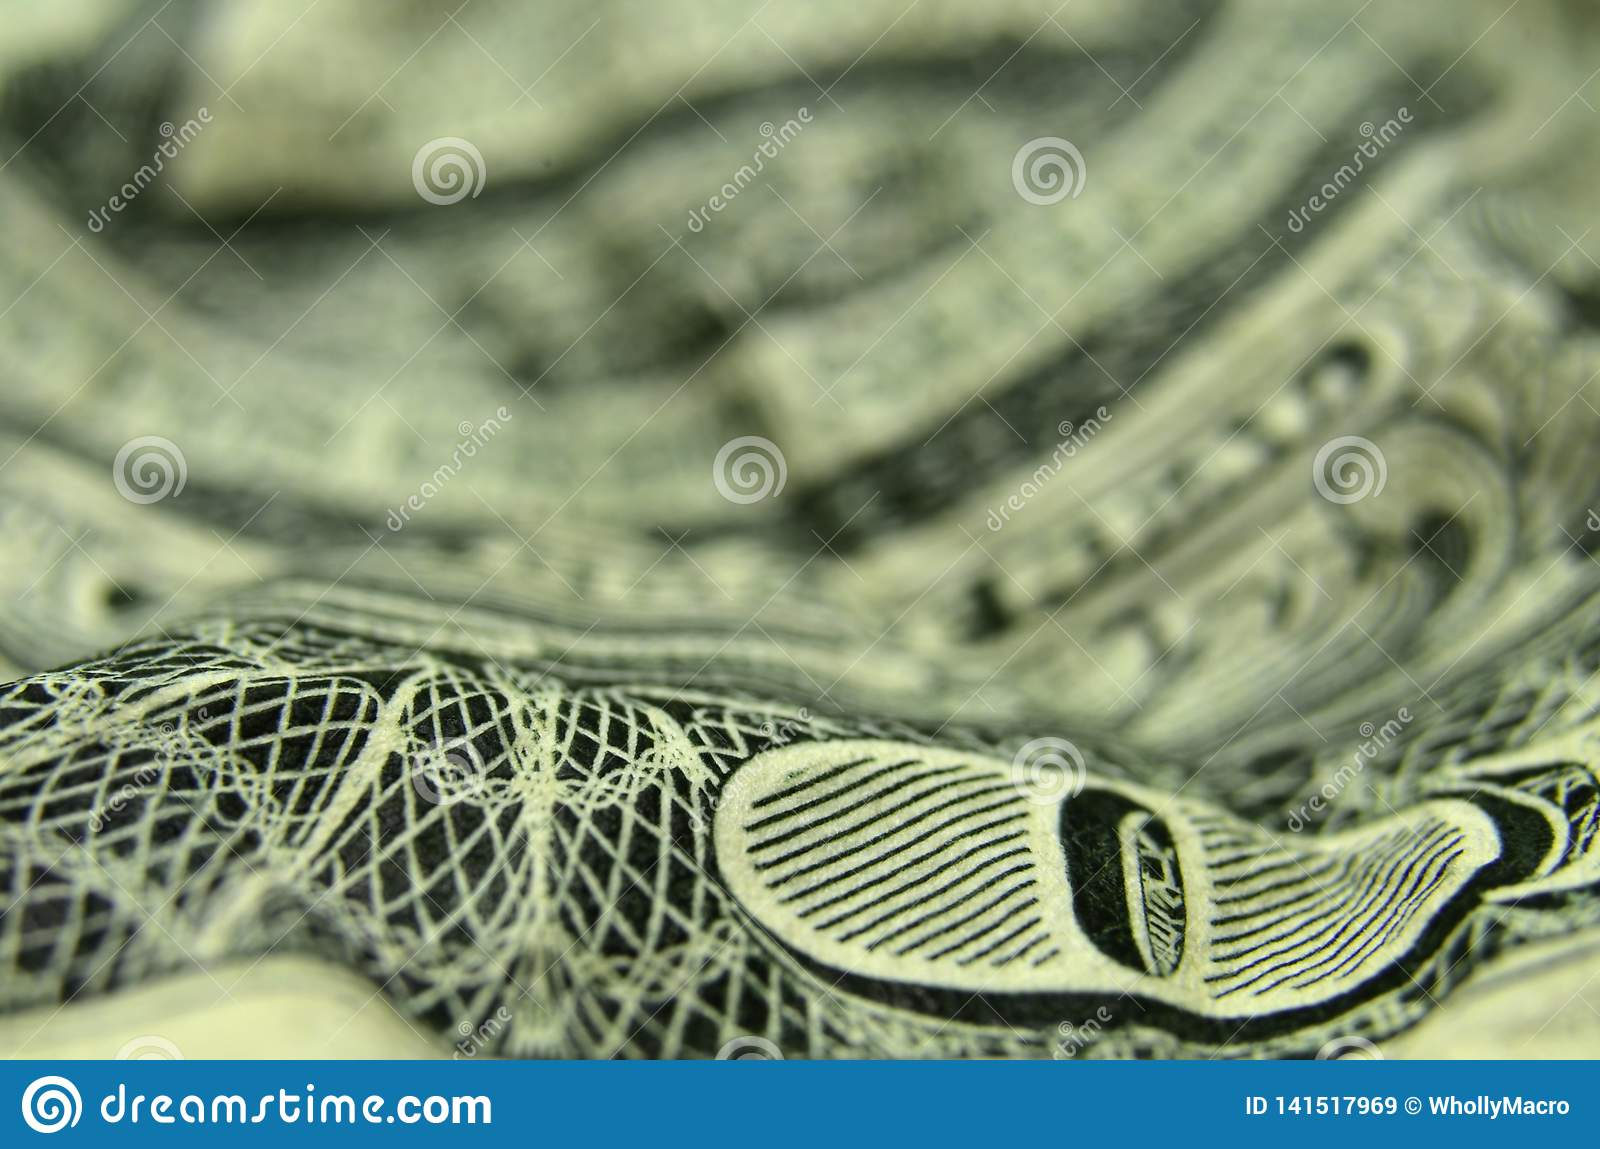 The O of ONE on the US dollar bill.